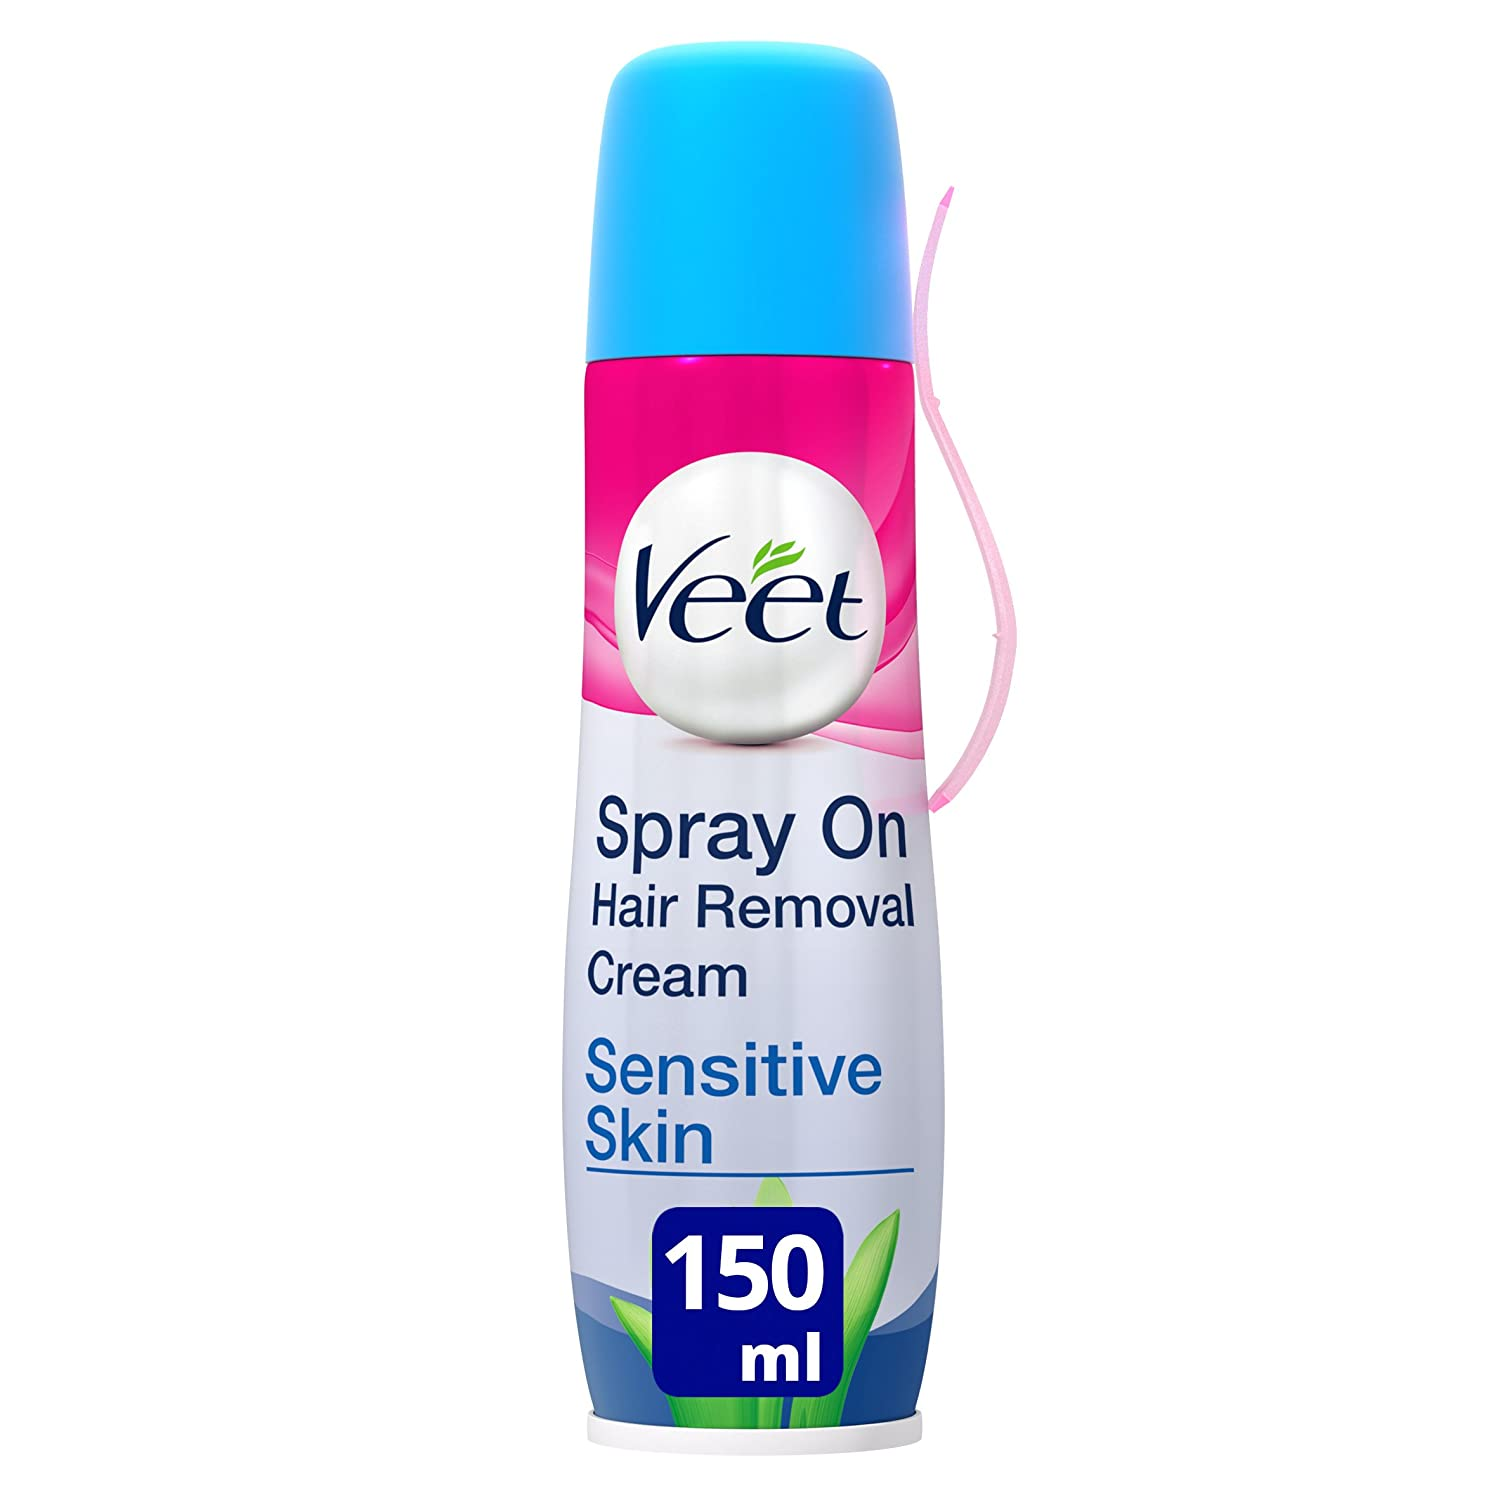 Veet Spray On Hair Removal Cream for Sensitive Skin: Amazon.es: Electrónica